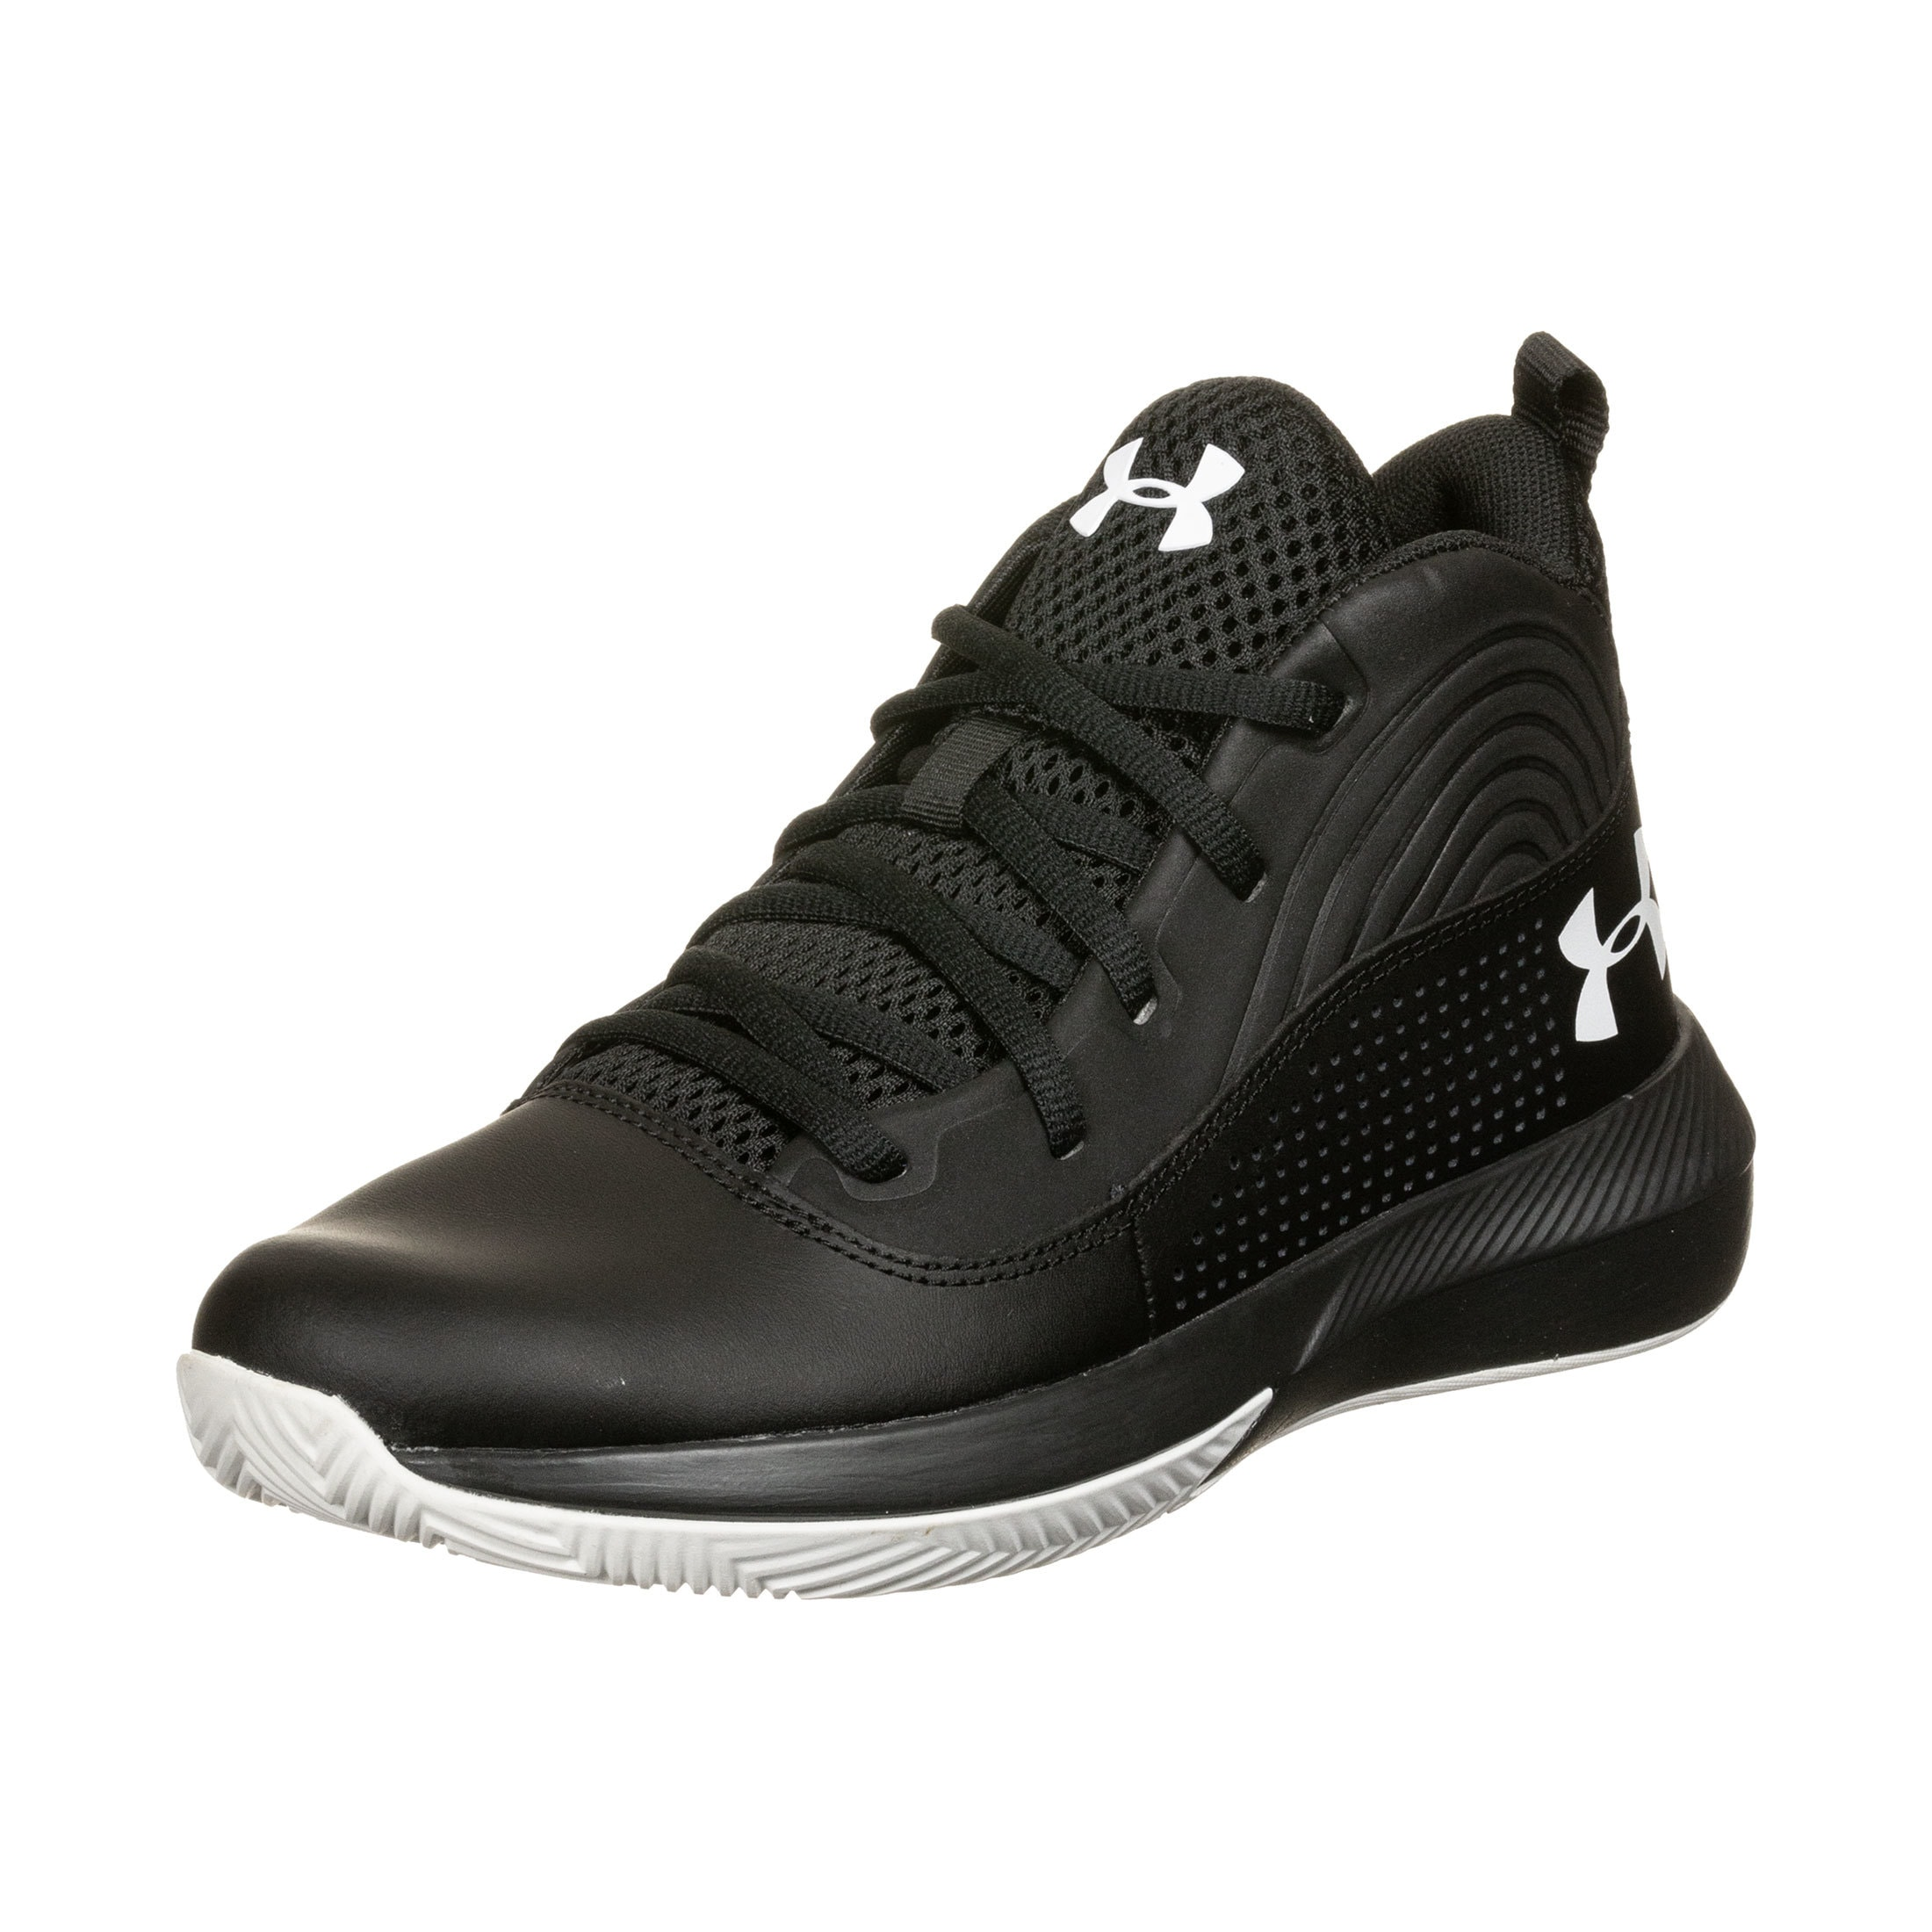 Image of Under Armour® Basketballschuh »Grade School Lockdown 4«